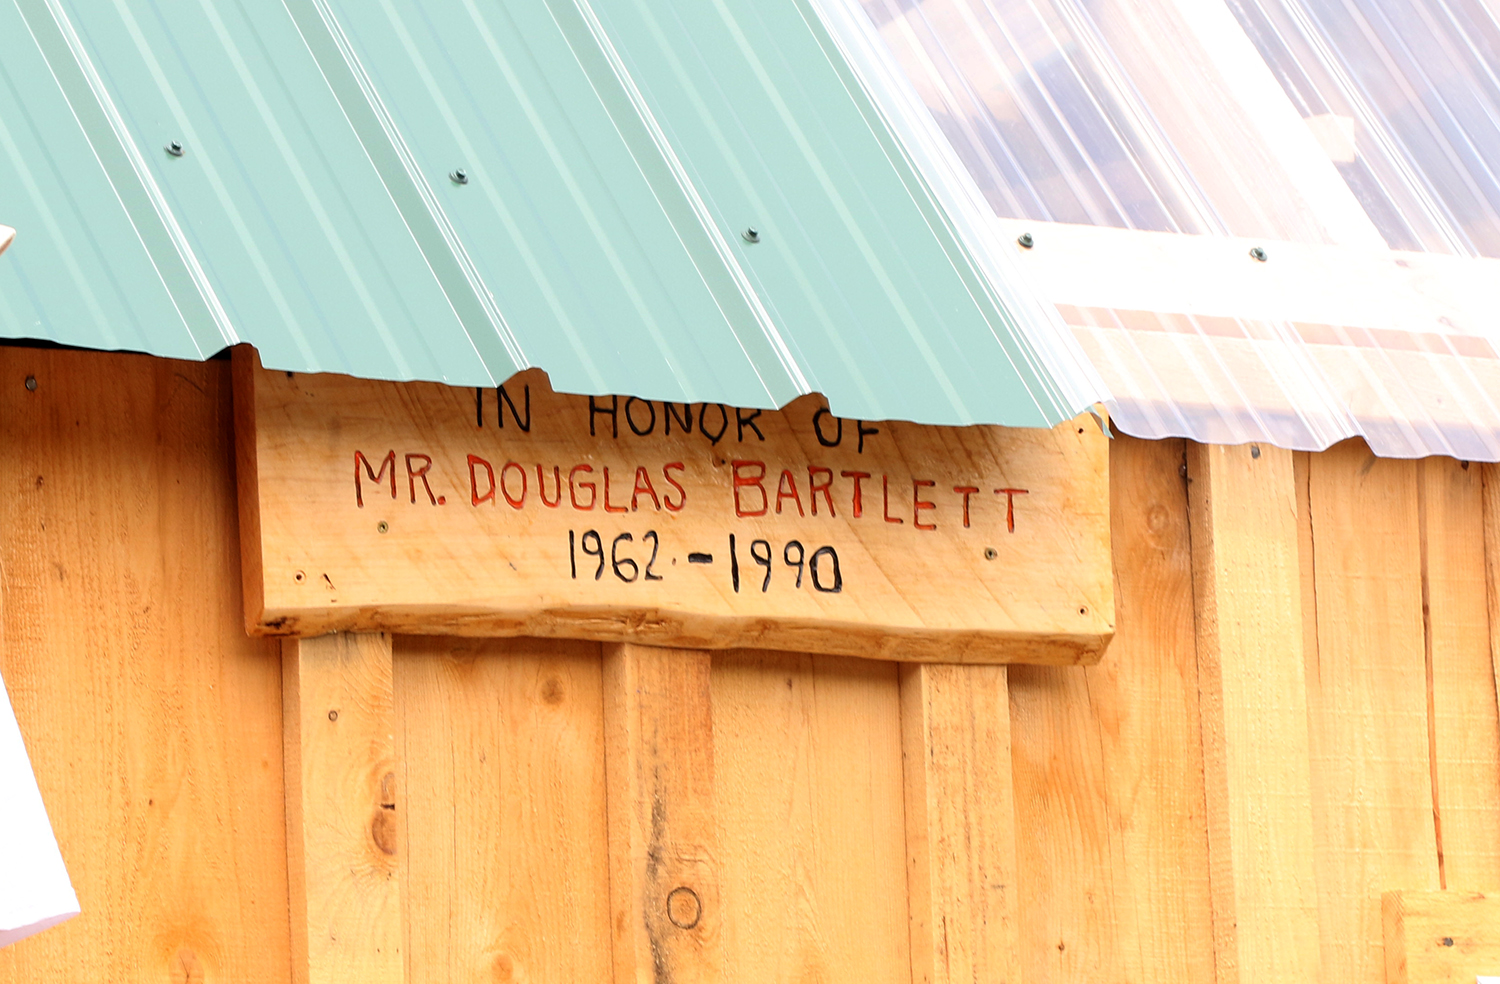 The sign on the shed